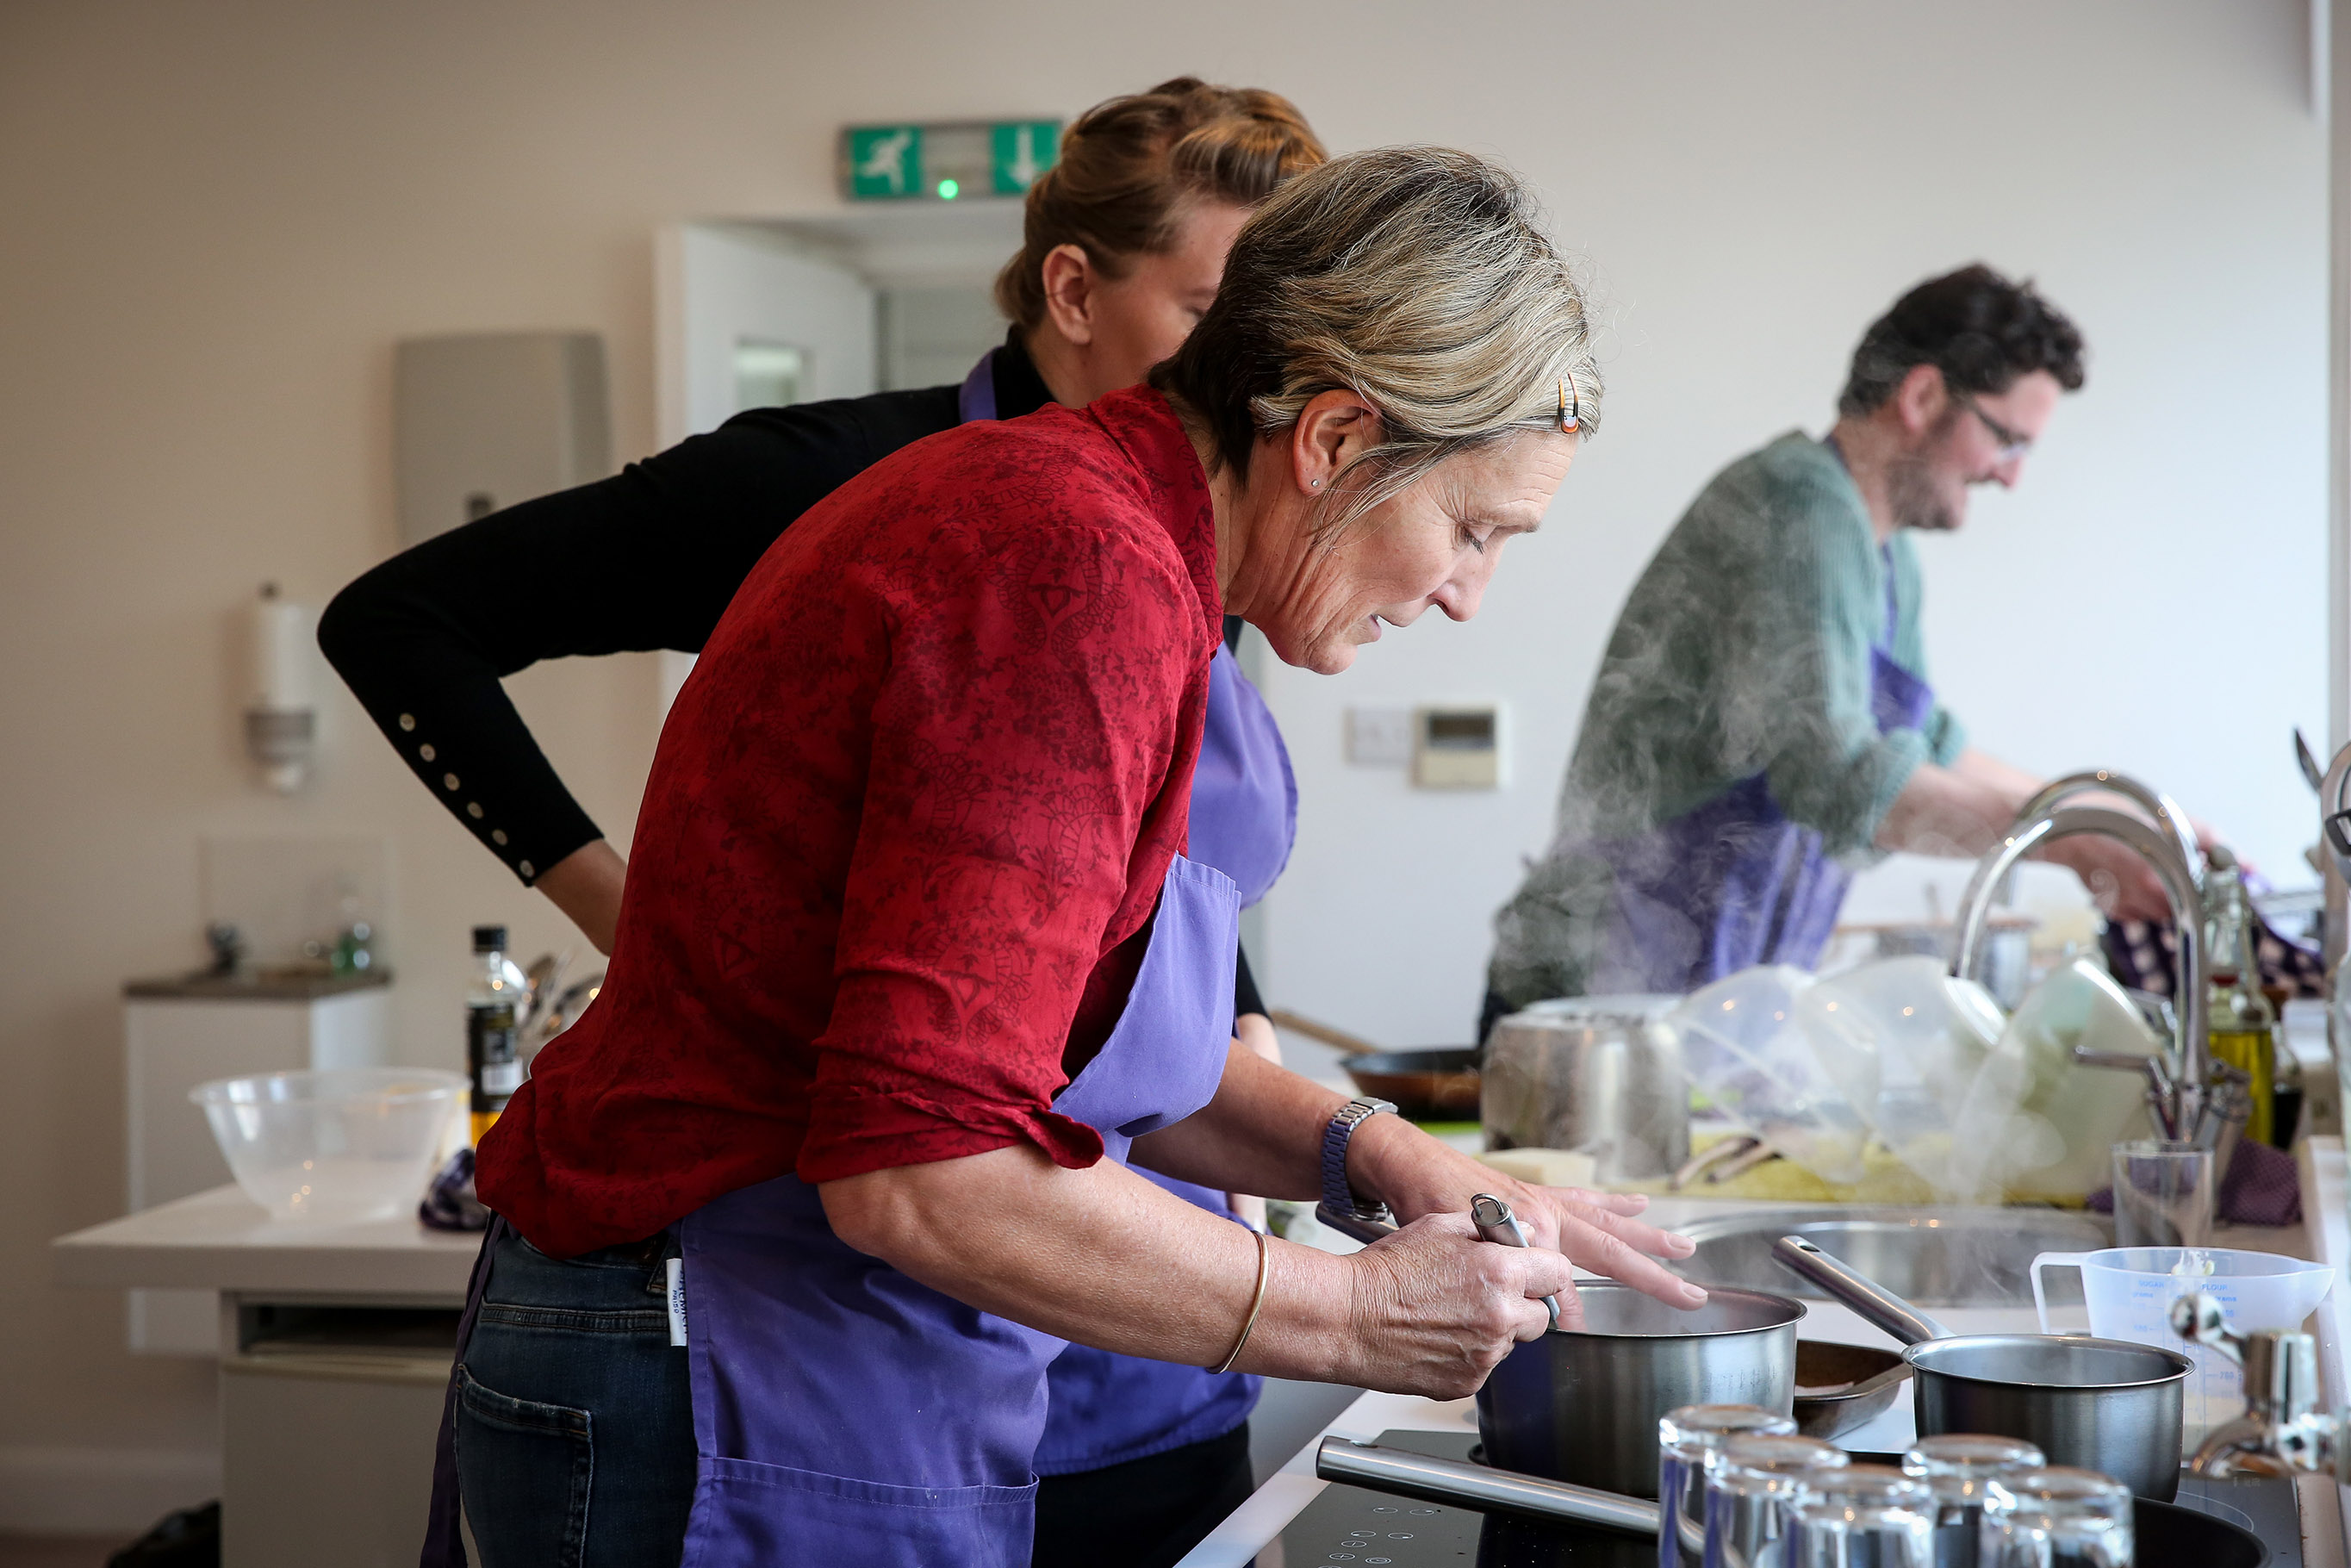 Arches Cookery School © Ceri Oakes